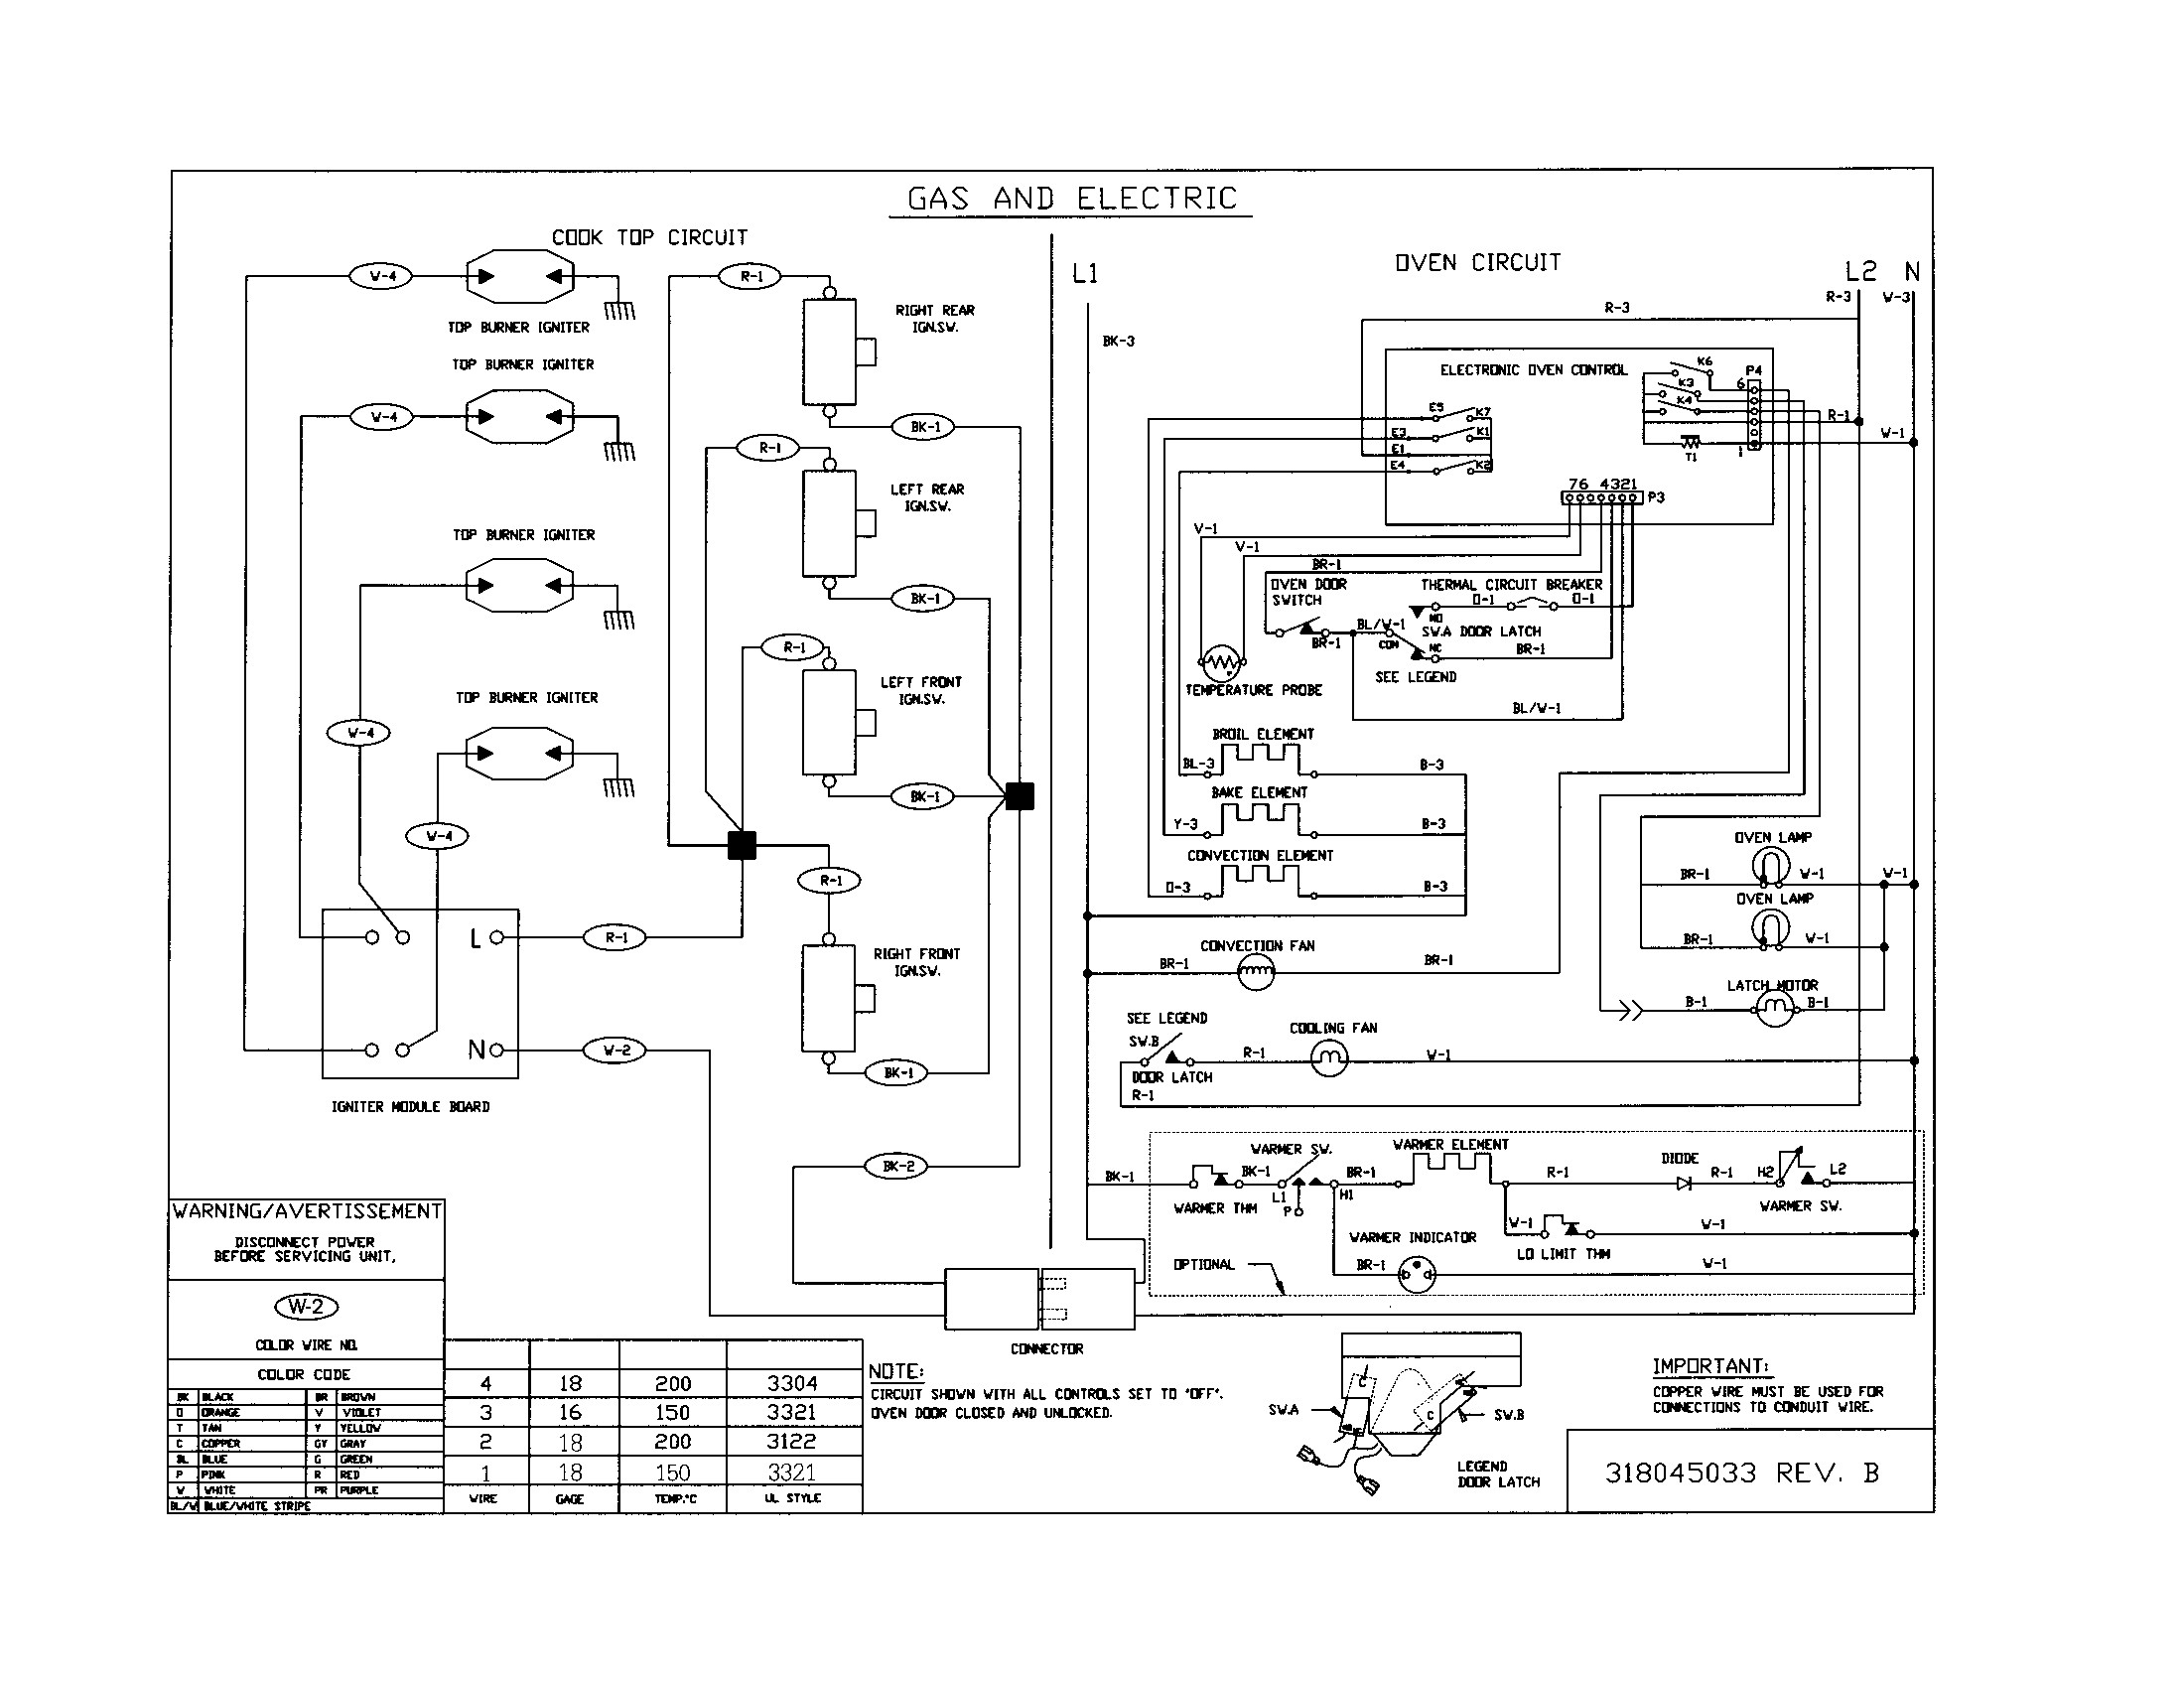 Wiring Diagram For Kenmore Dryer Model Wiring Diagram In Refrigerator Inspirationa Wiring Diagram Kenmore Dryer Kenmore Dryer Model Wiring B on Kenmore Elite Refrigerator Diagram